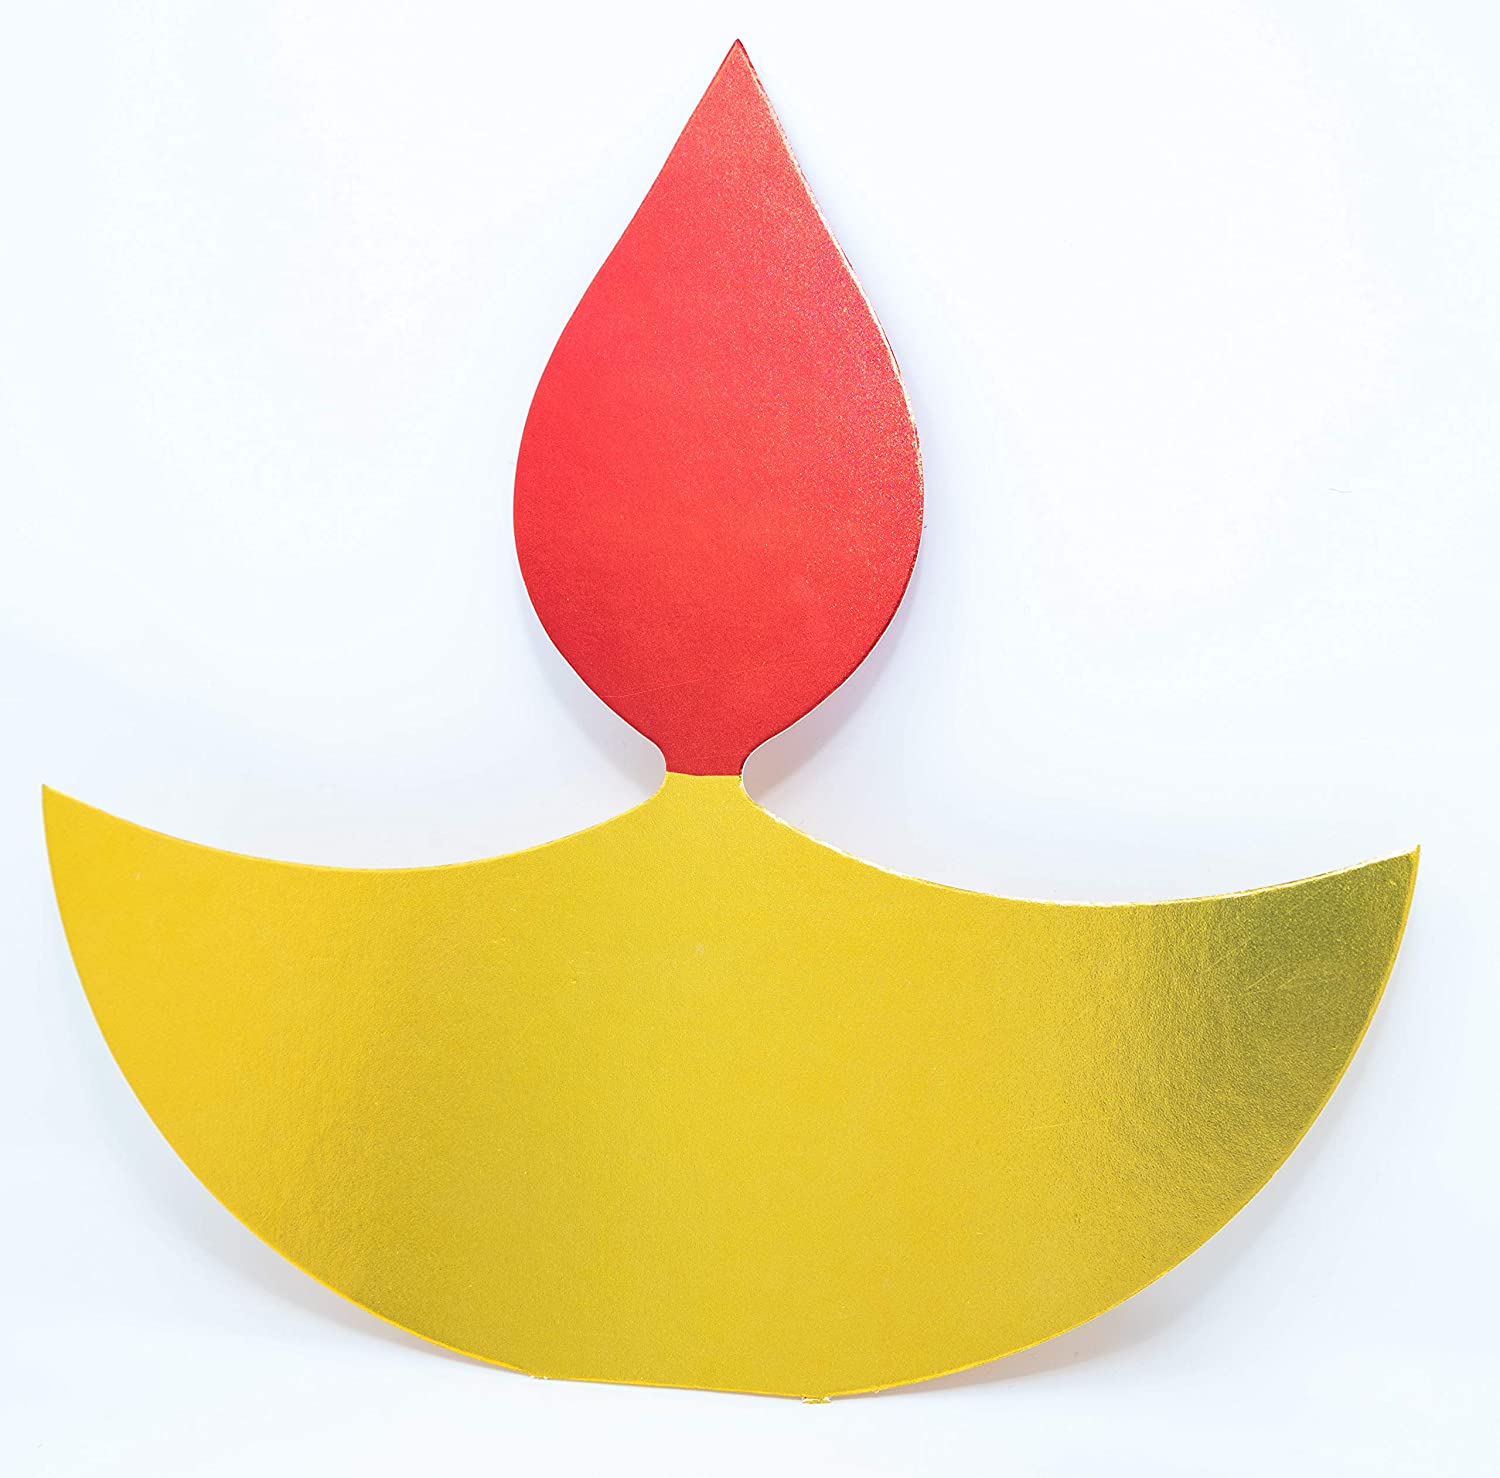 Desi Favors Diya Shaped Cutouts Big Size for Diwali Decorations for Home Diya Decor - Indoor and Outdoor Diwali Crafts